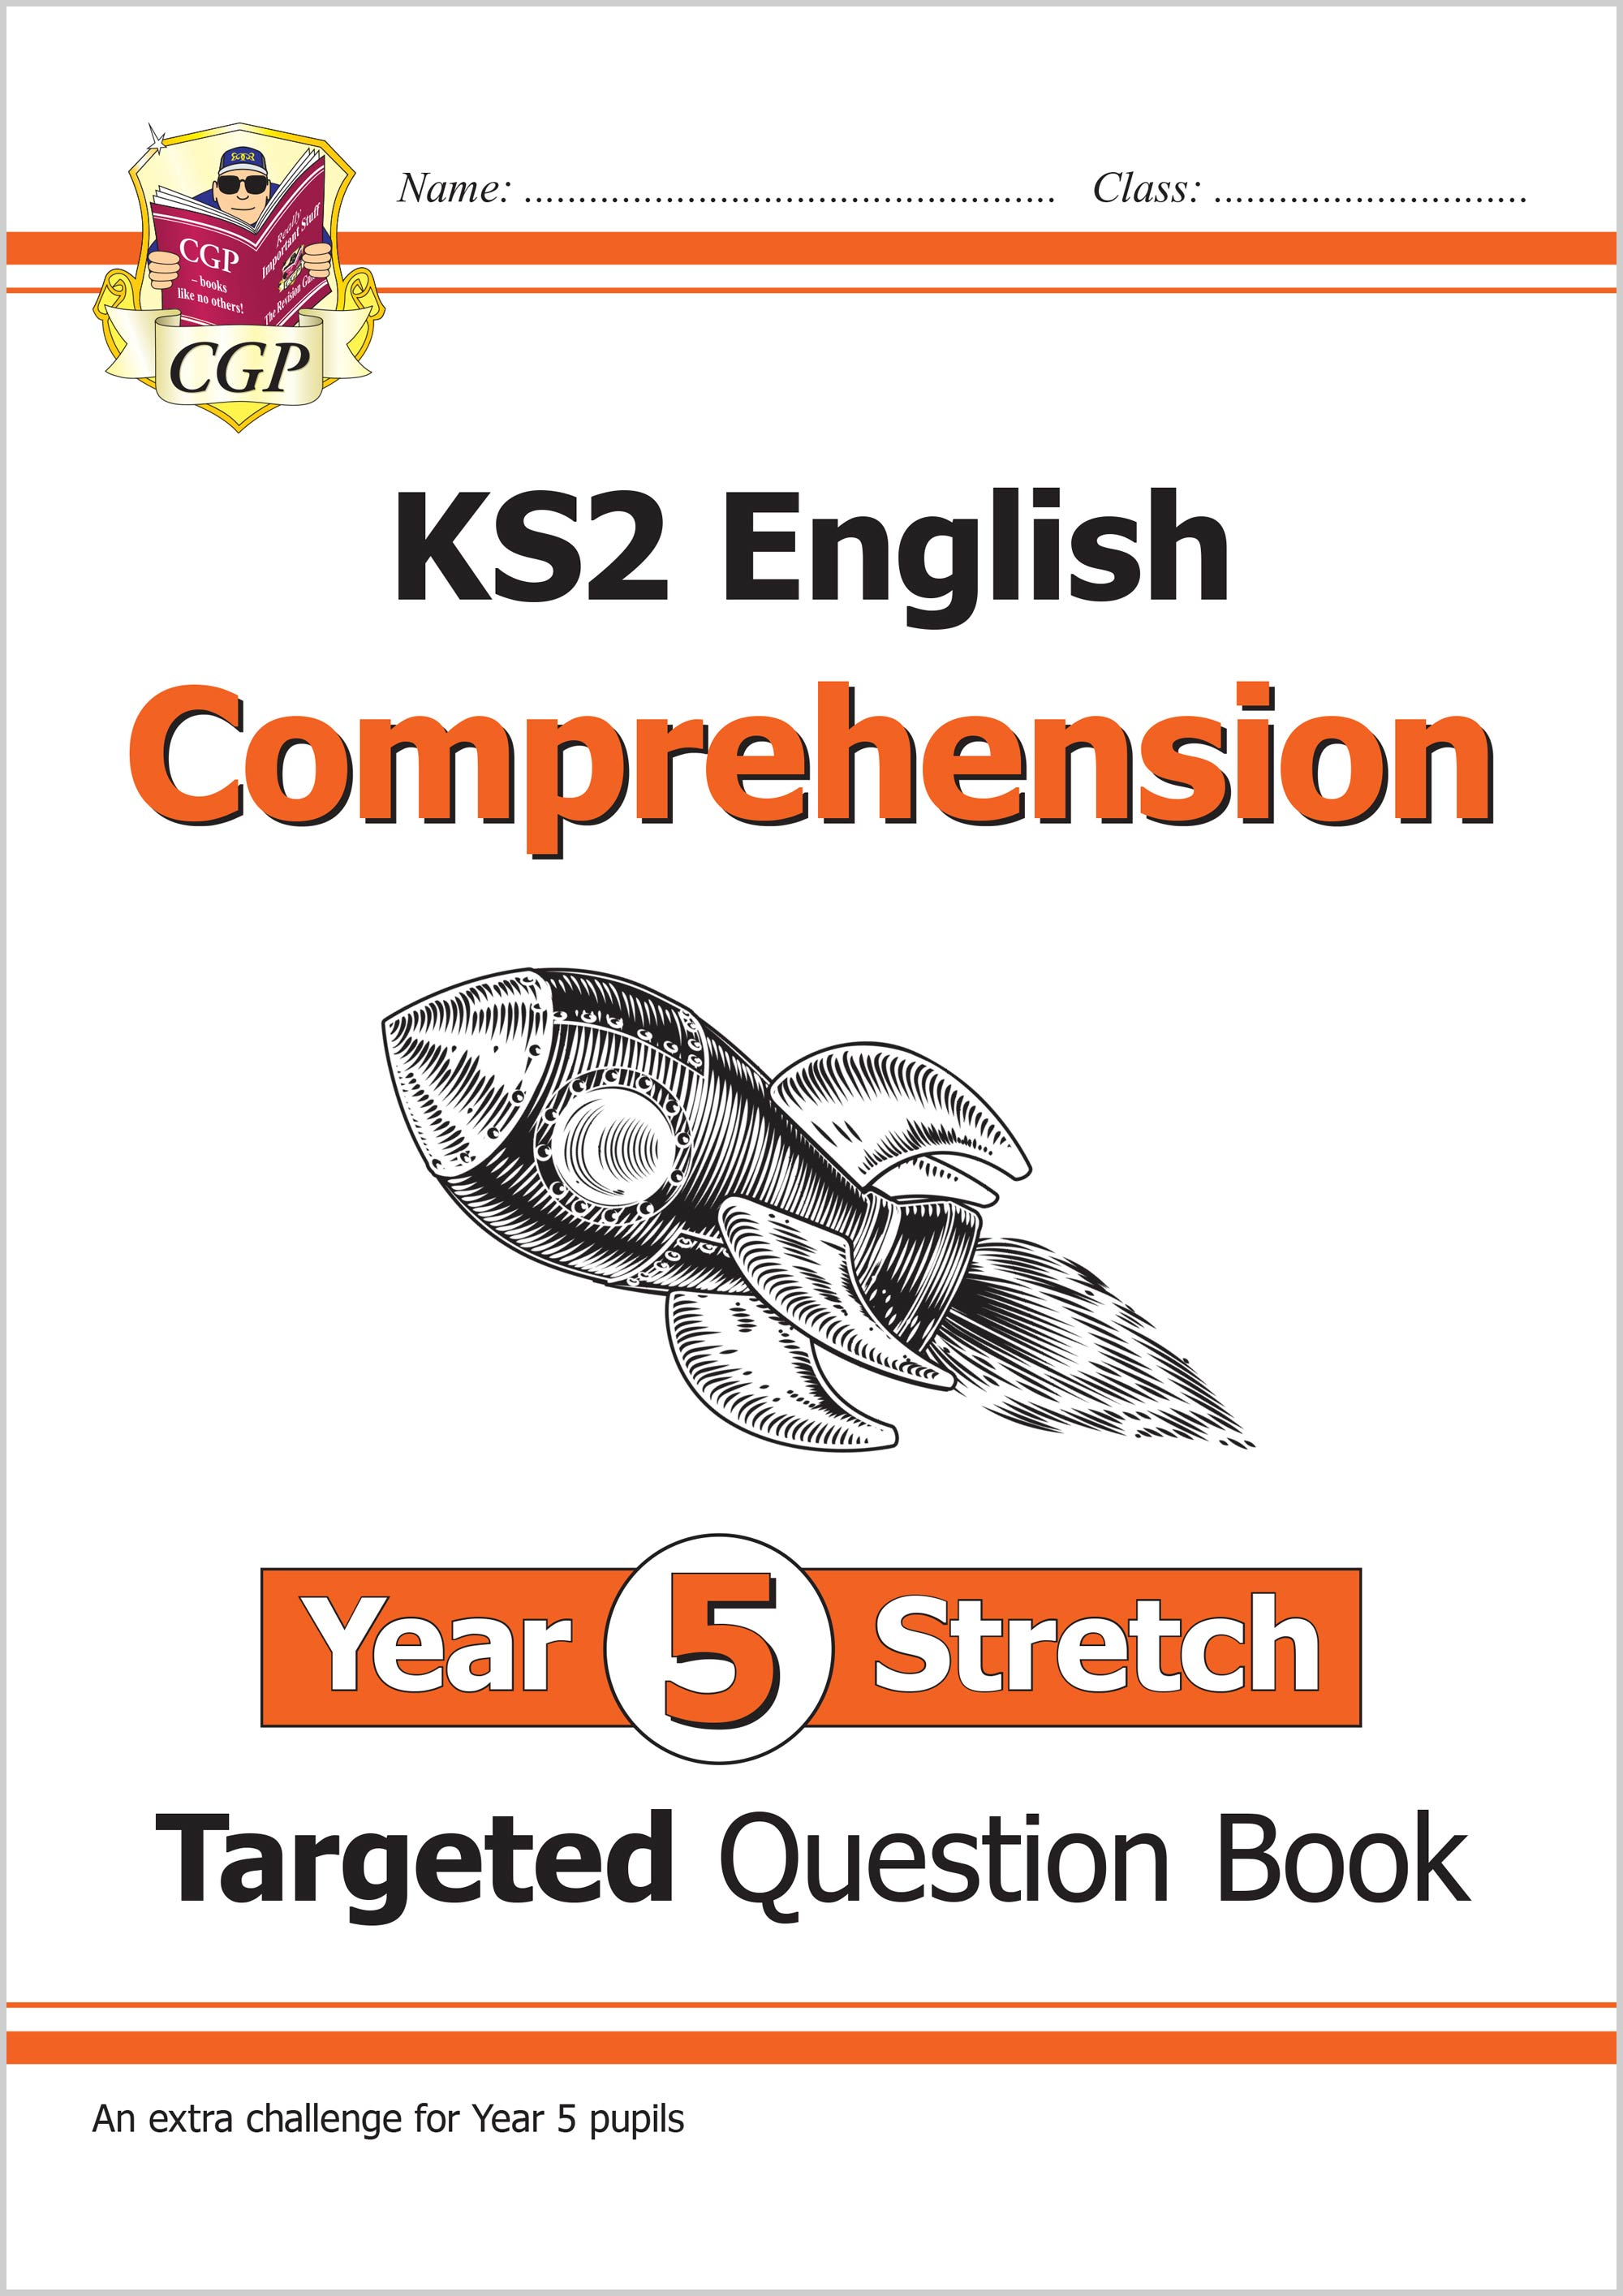 E5HCW21 - New KS2 English Targeted Question Book: Challenging Comprehension - Year 5 Stretch (with A